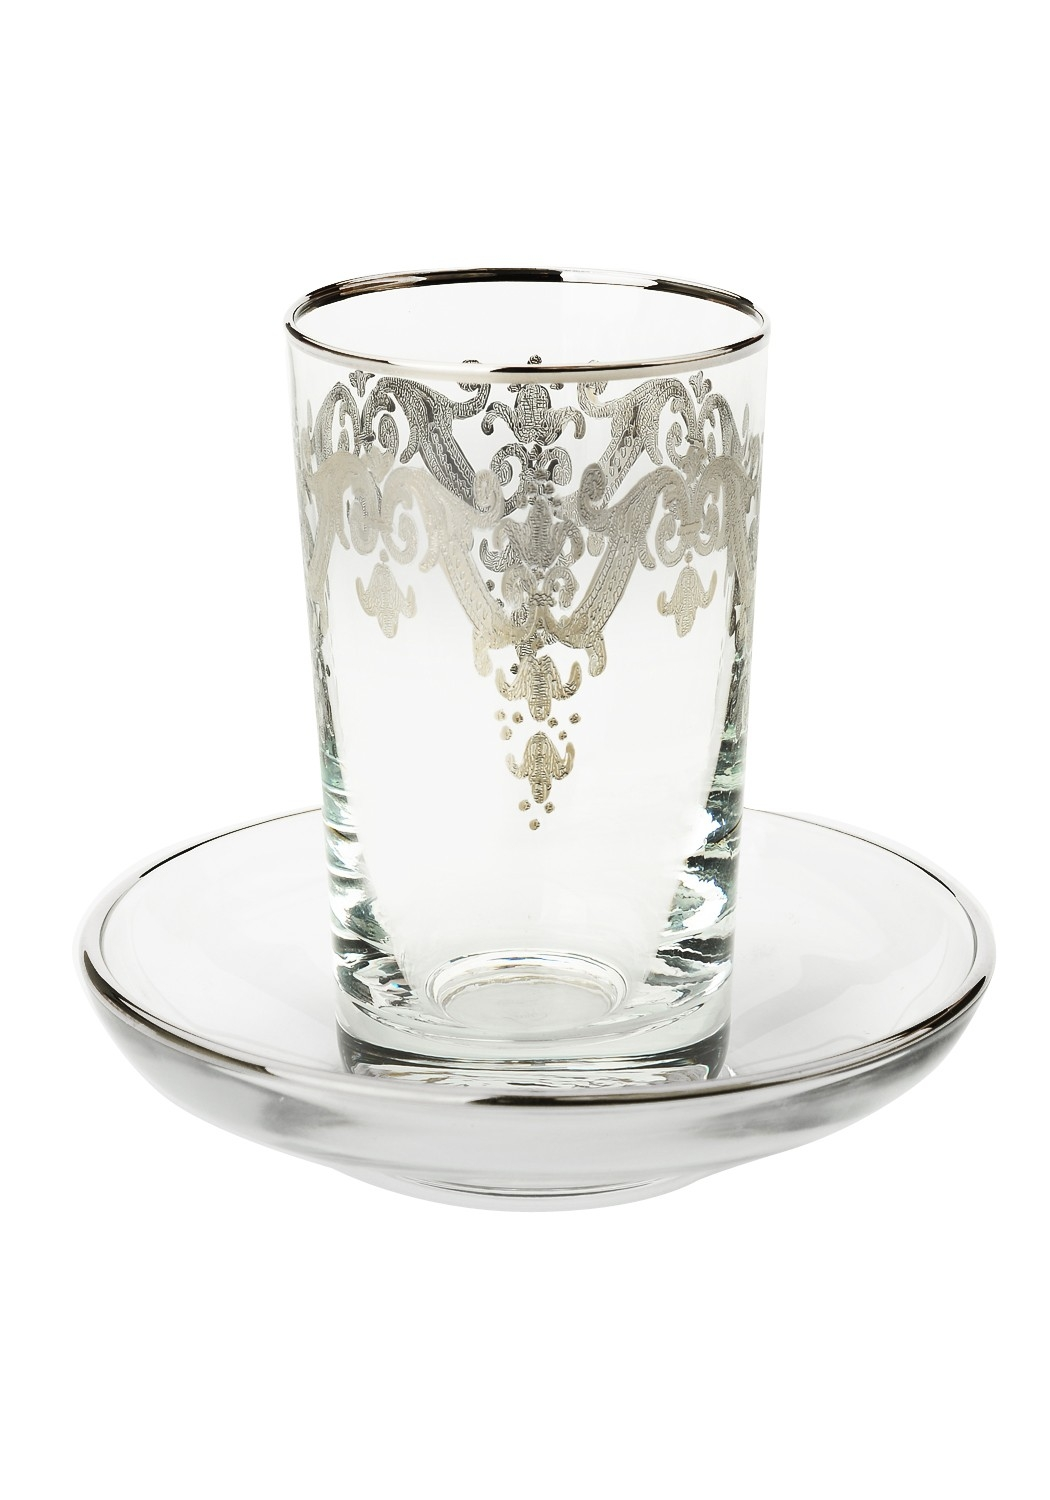 Set of 6 Cups with Tray with Silver Artwork